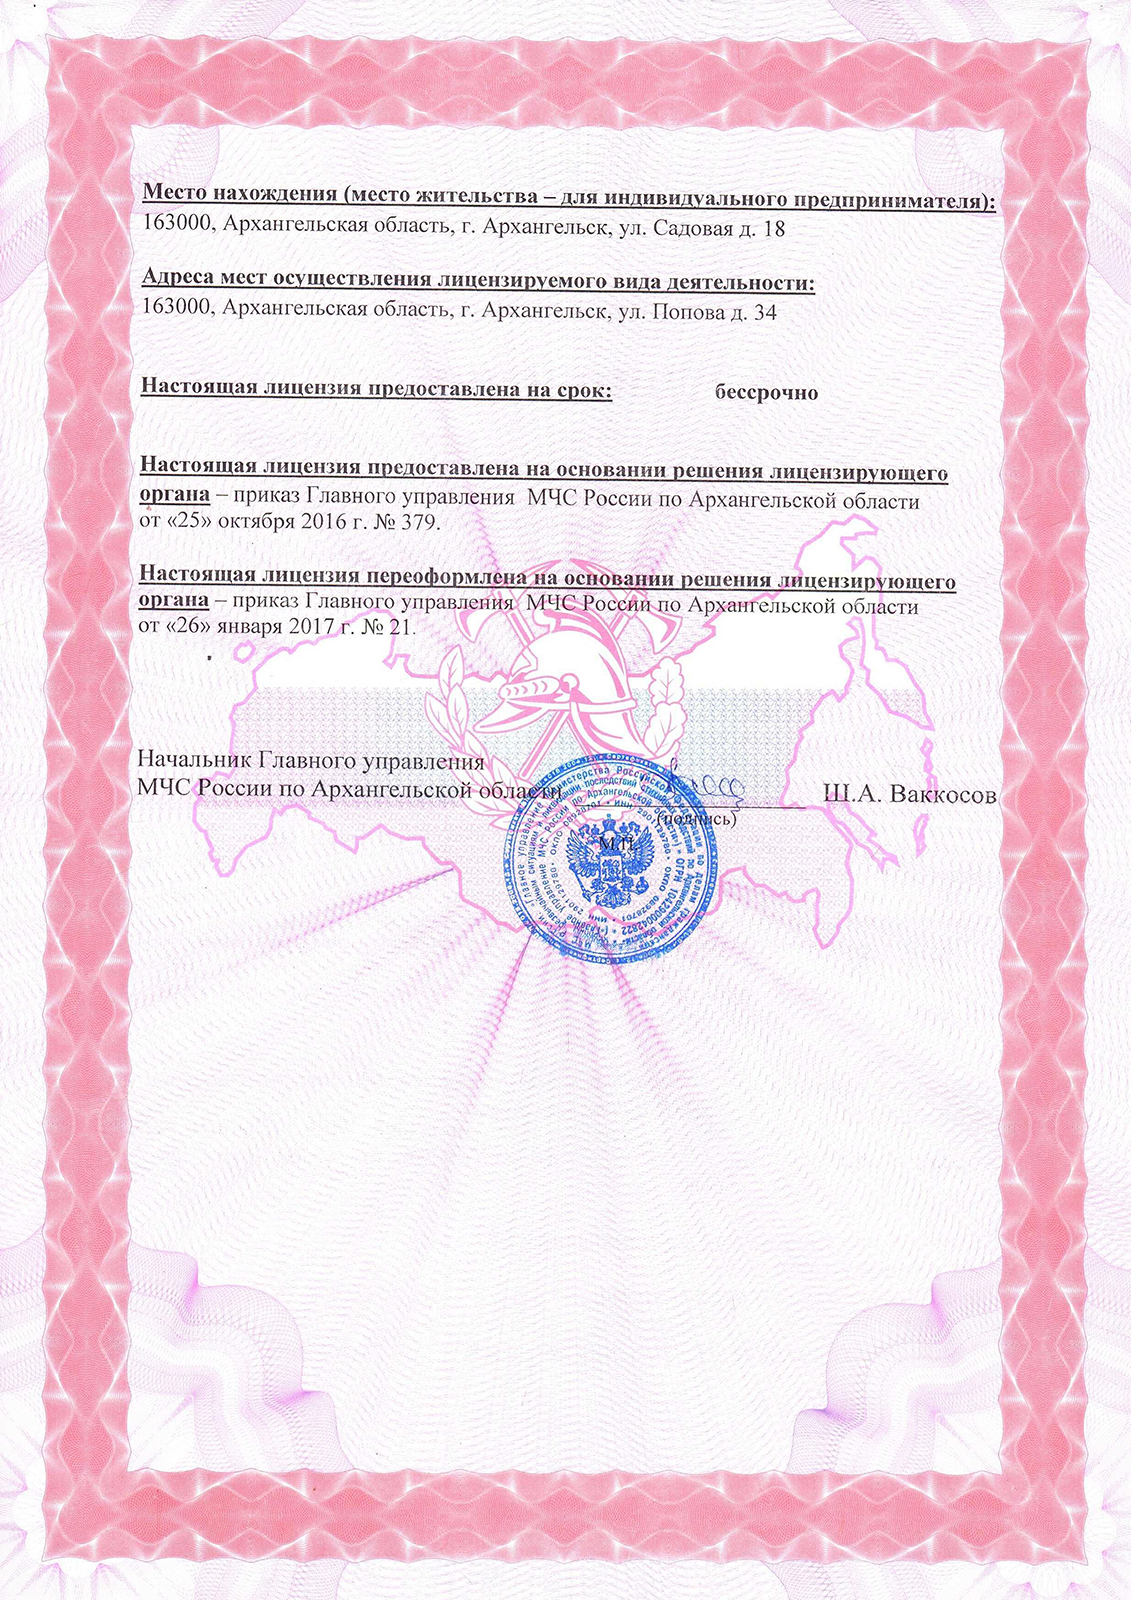 License for the implementation of activities for the installation, maintenance and repair of fire safety equipment for buildings and structures (back side)